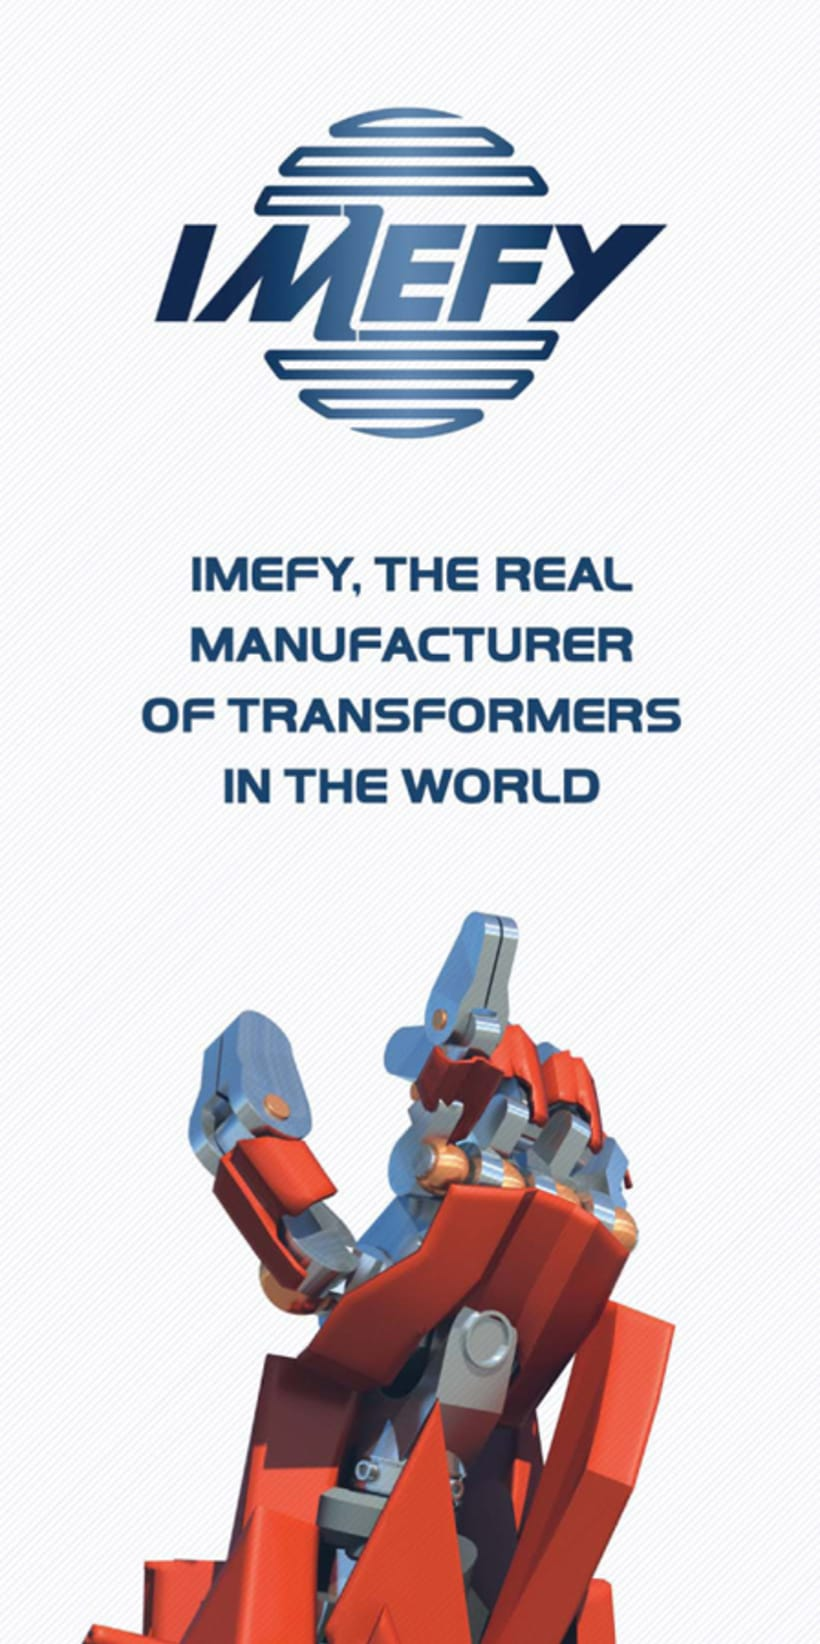 Imefy, the real manufacturer of transformers in the world. 2